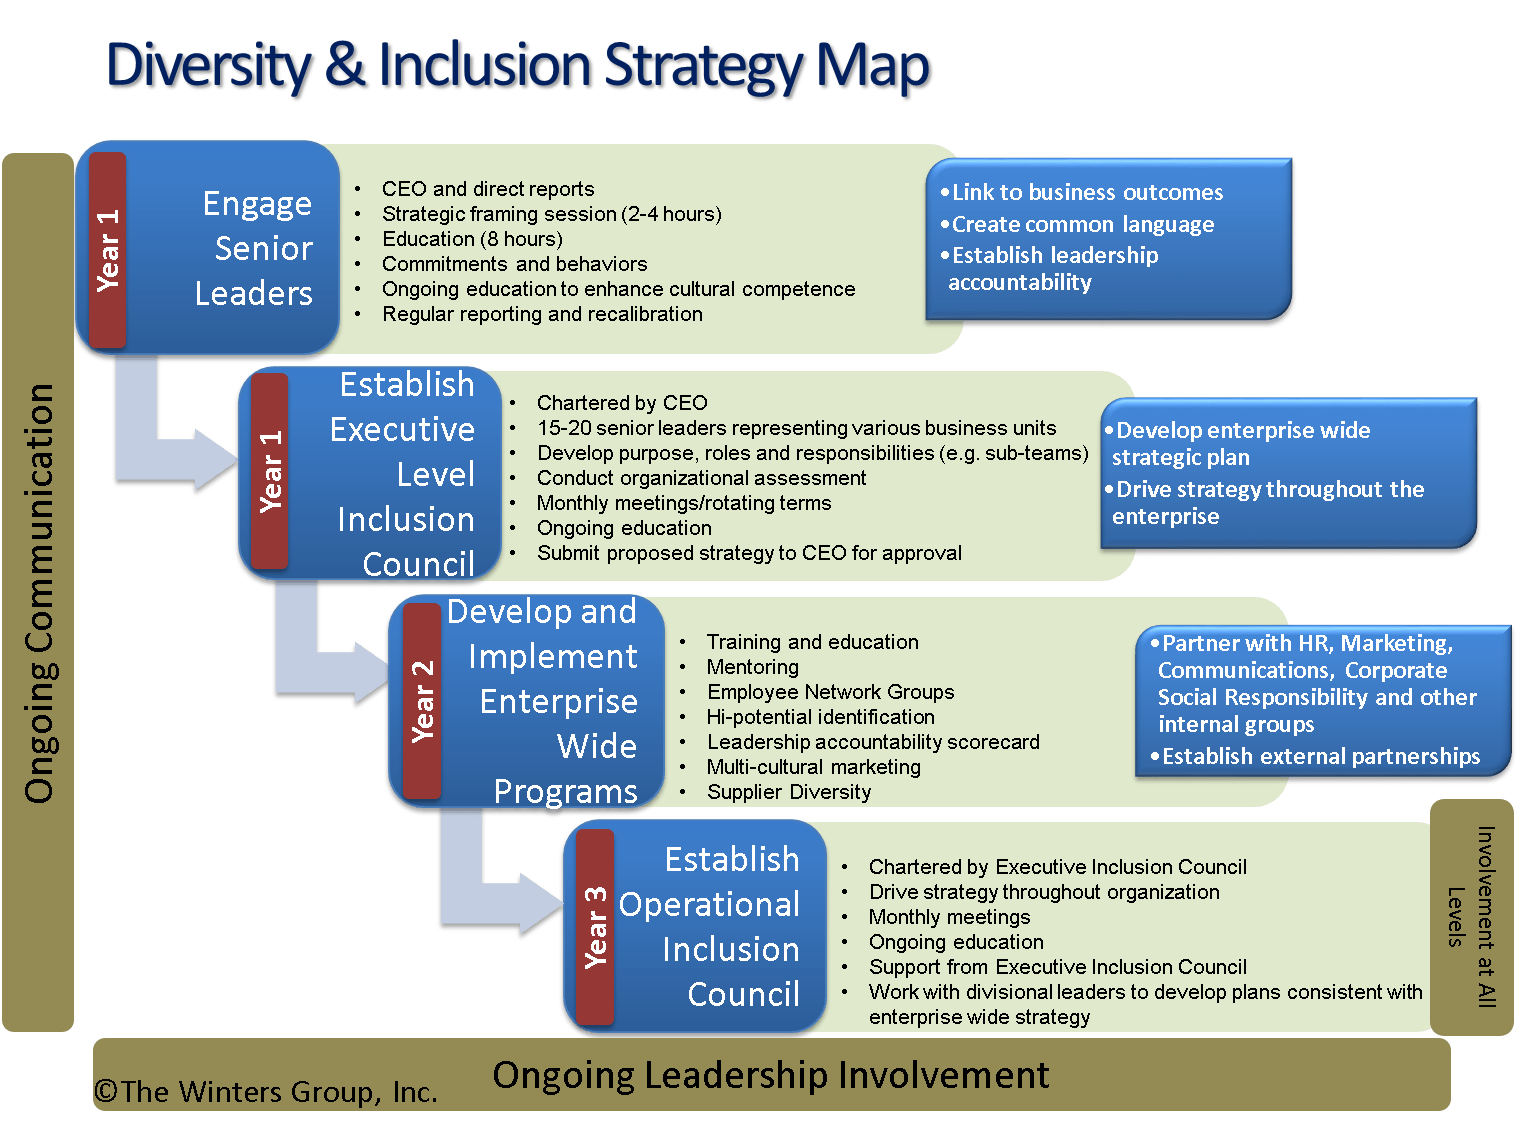 Developing Sustainable Diversity & Inclusion Strategies